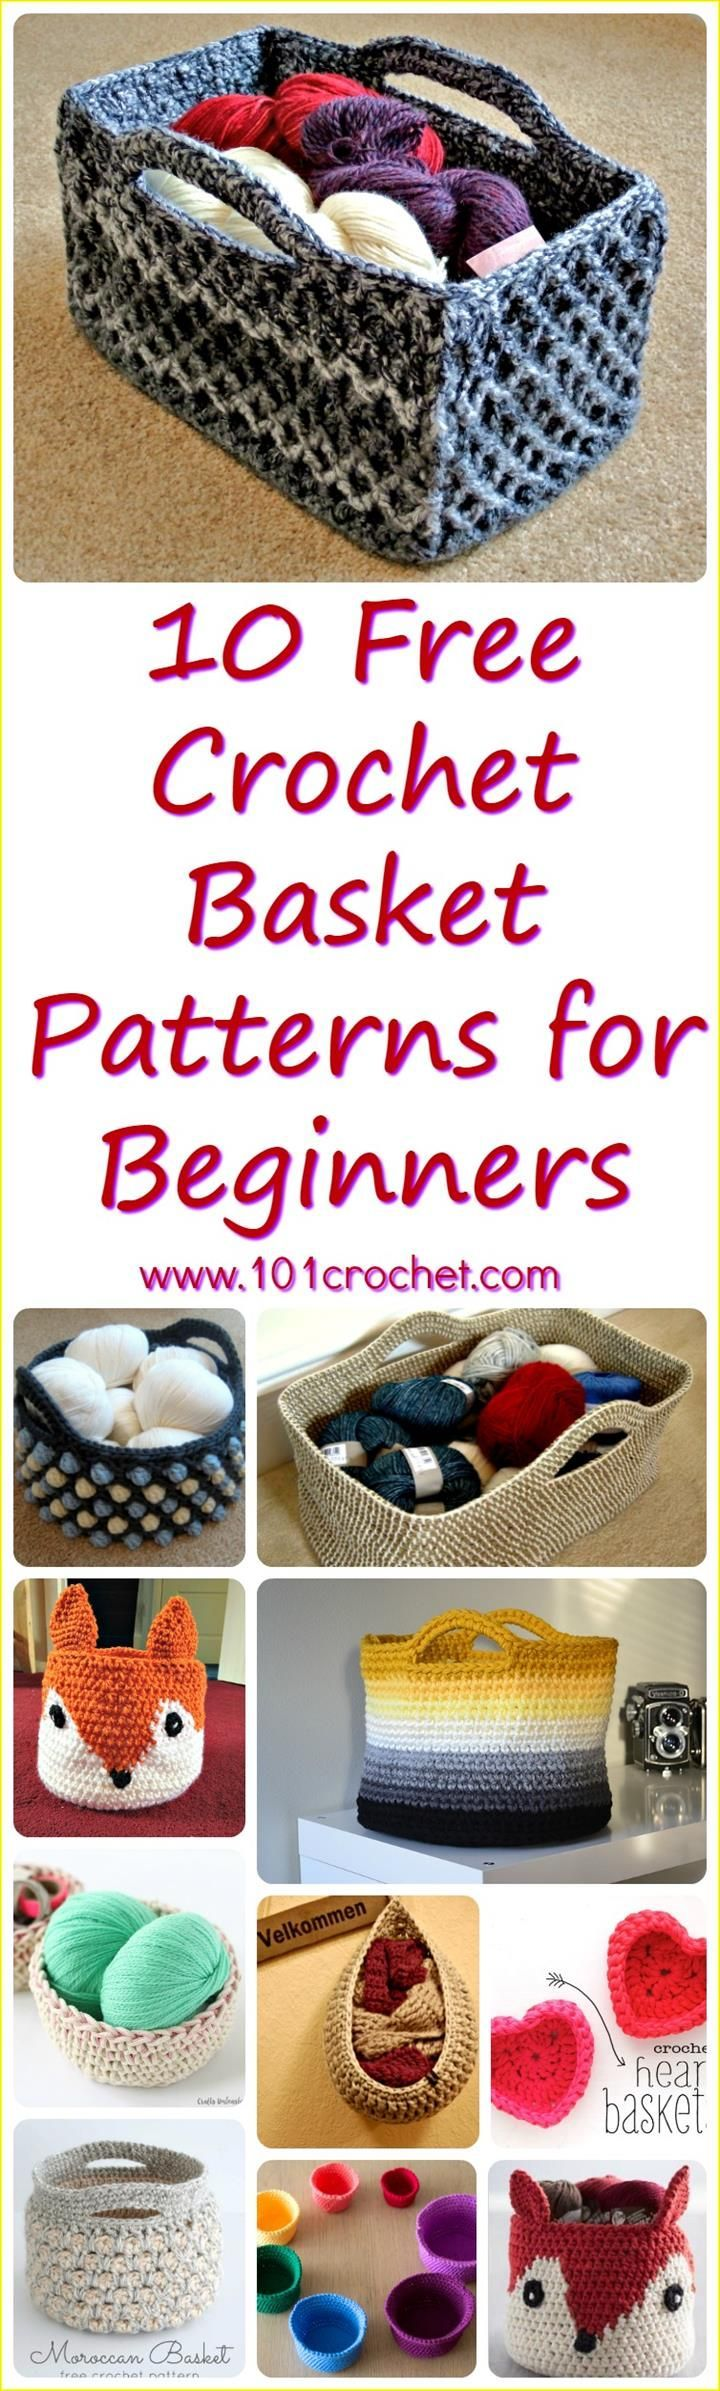 10-Free-Crochet-Basket-Patterns-for-Beginners.jpg 720 ×2.391 pixels